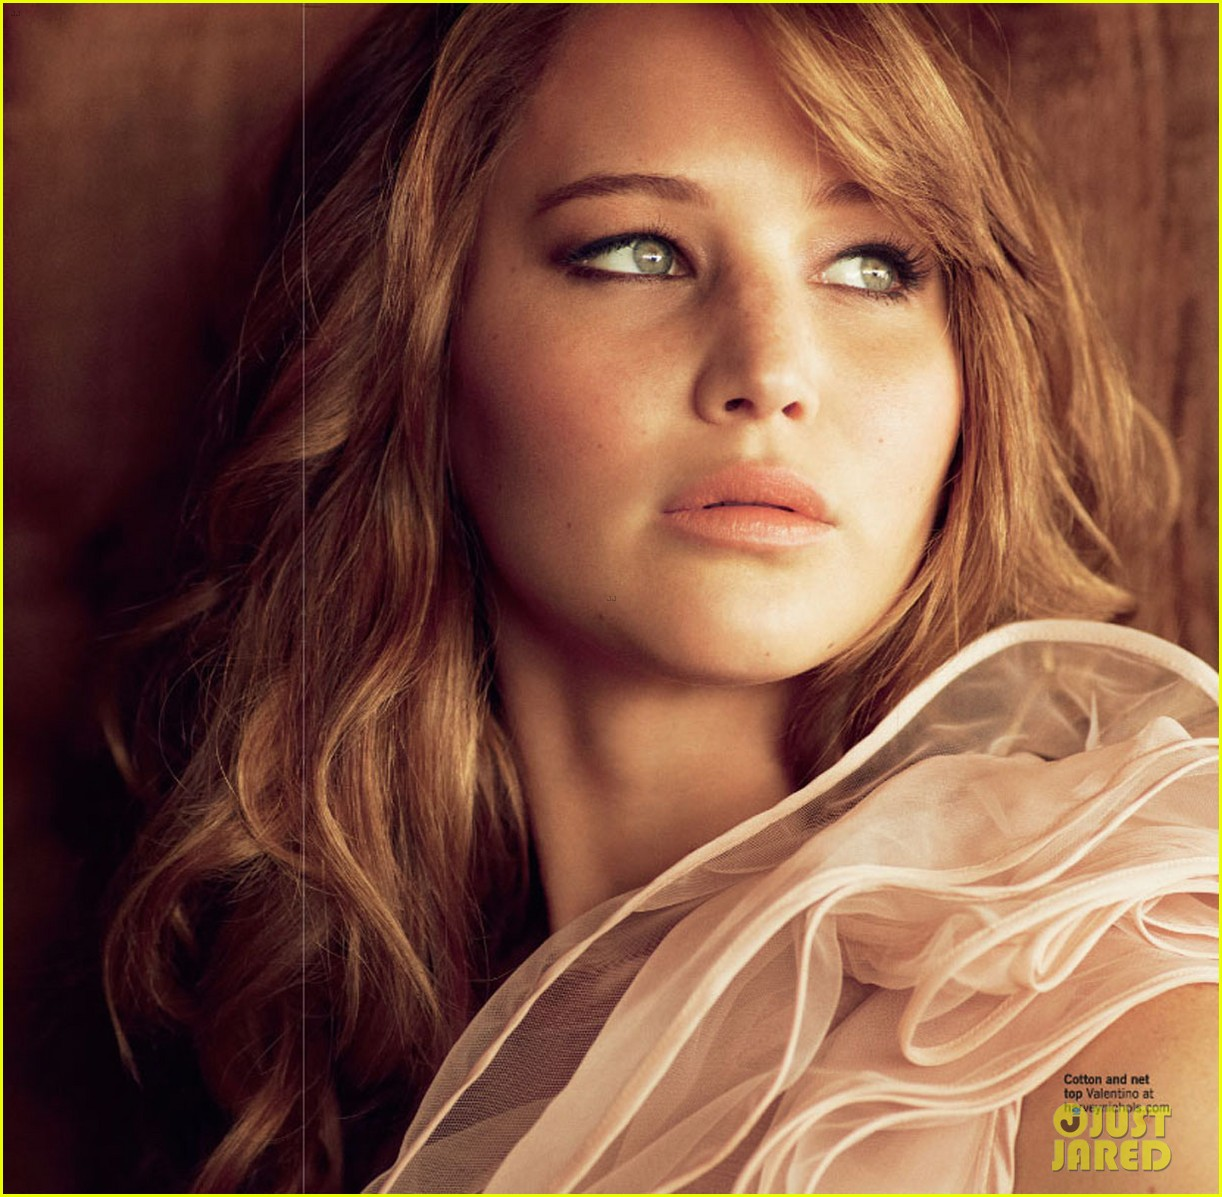 http://1.bp.blogspot.com/-RVpMuN9UbDw/T00SsorvDuI/AAAAAAAAE2g/JsthPQsGb9w/s1600/Jennifer+Lawrence+glamour+uk++Cover+Photoshoot+april+2012+(4).jpg